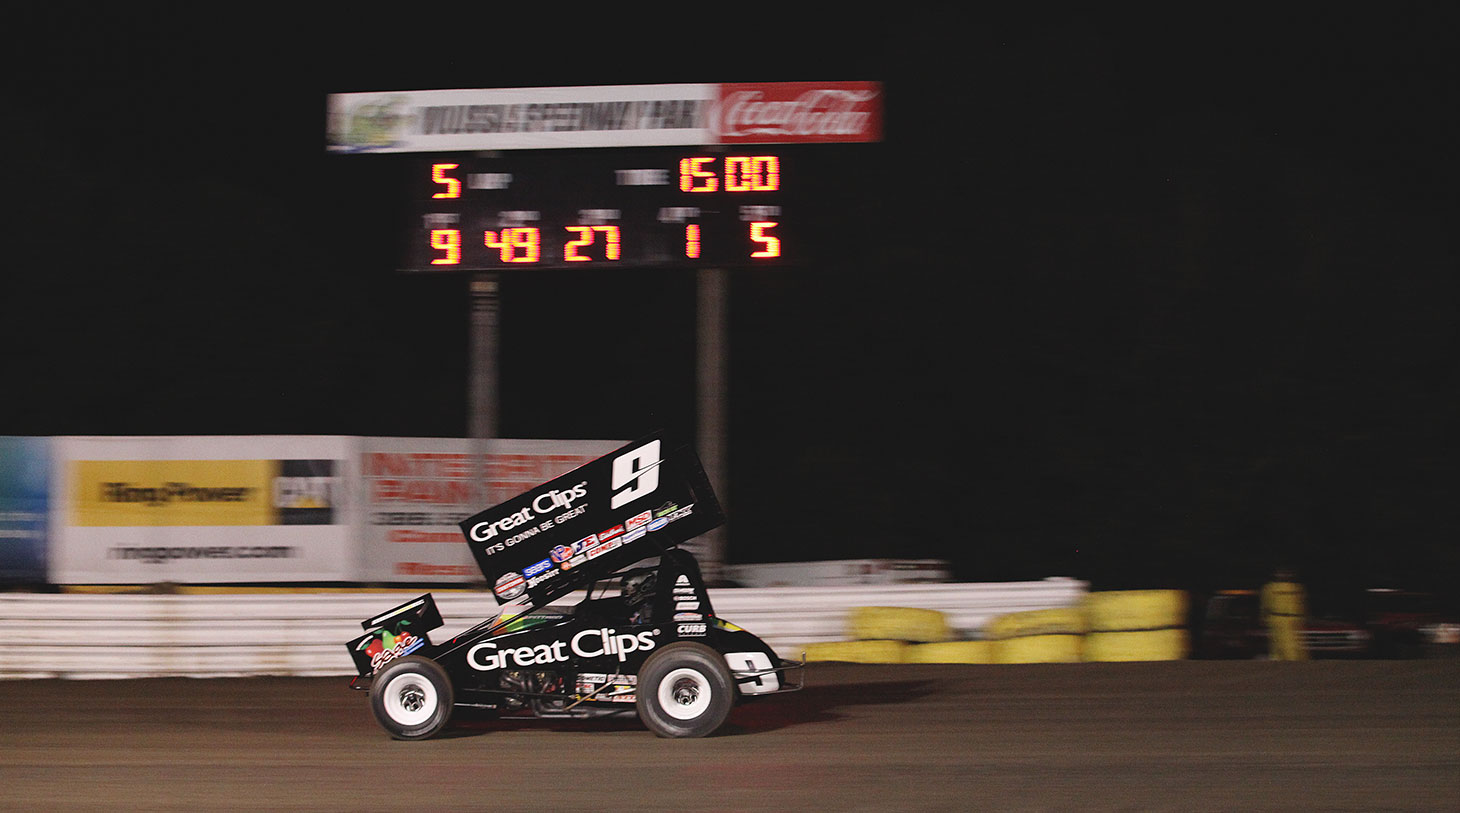 Daryn Pittman leading down the backstretch at Volusia Speedway in Florida.